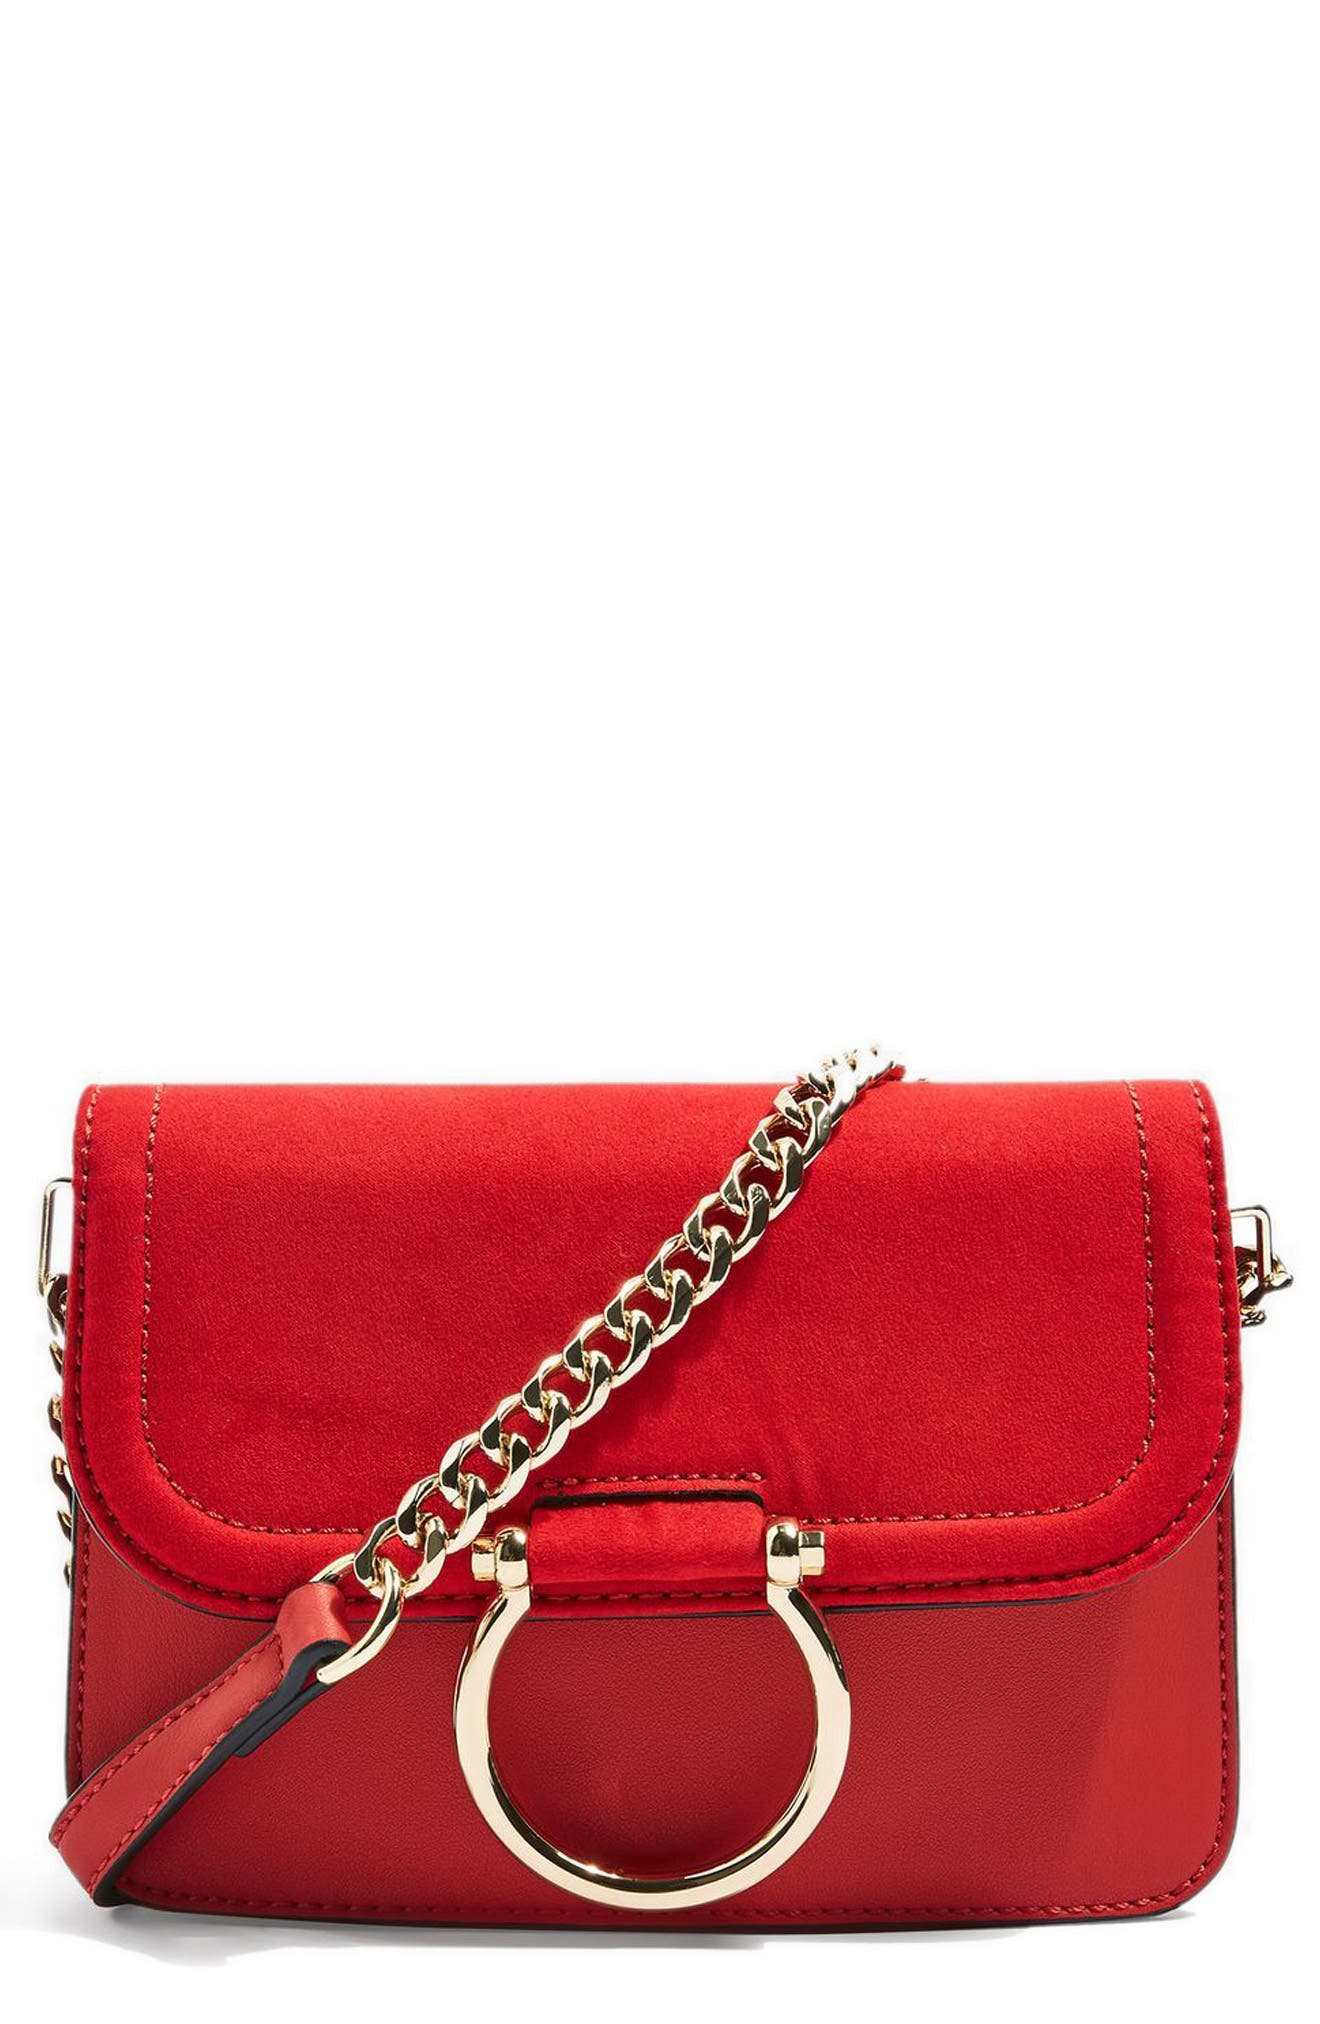 Alternate Image 1 Selected - Topshop Remy Trophy Faux Leather Crossbody Bag